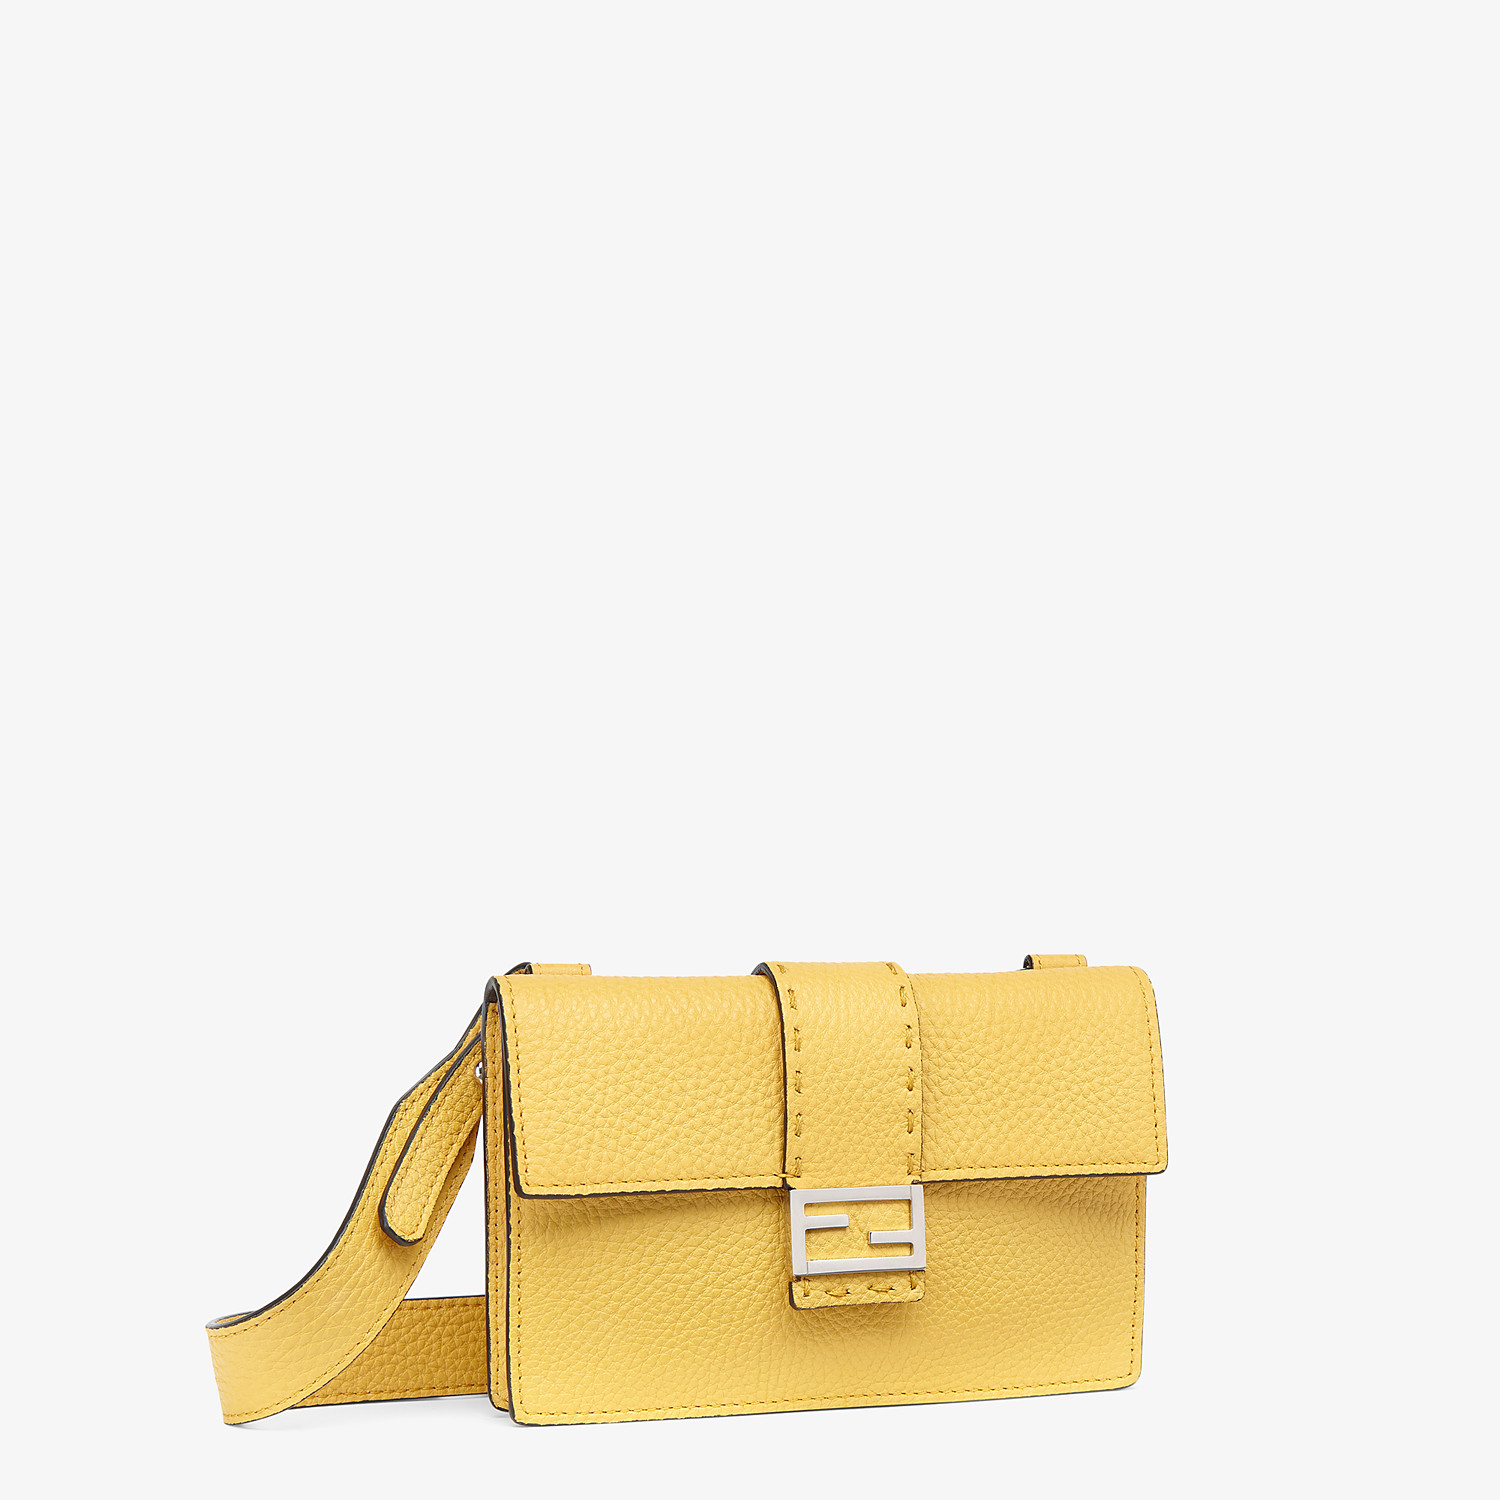 FENDI BAGUETTE POUCH - Yellow leather bag - view 2 detail